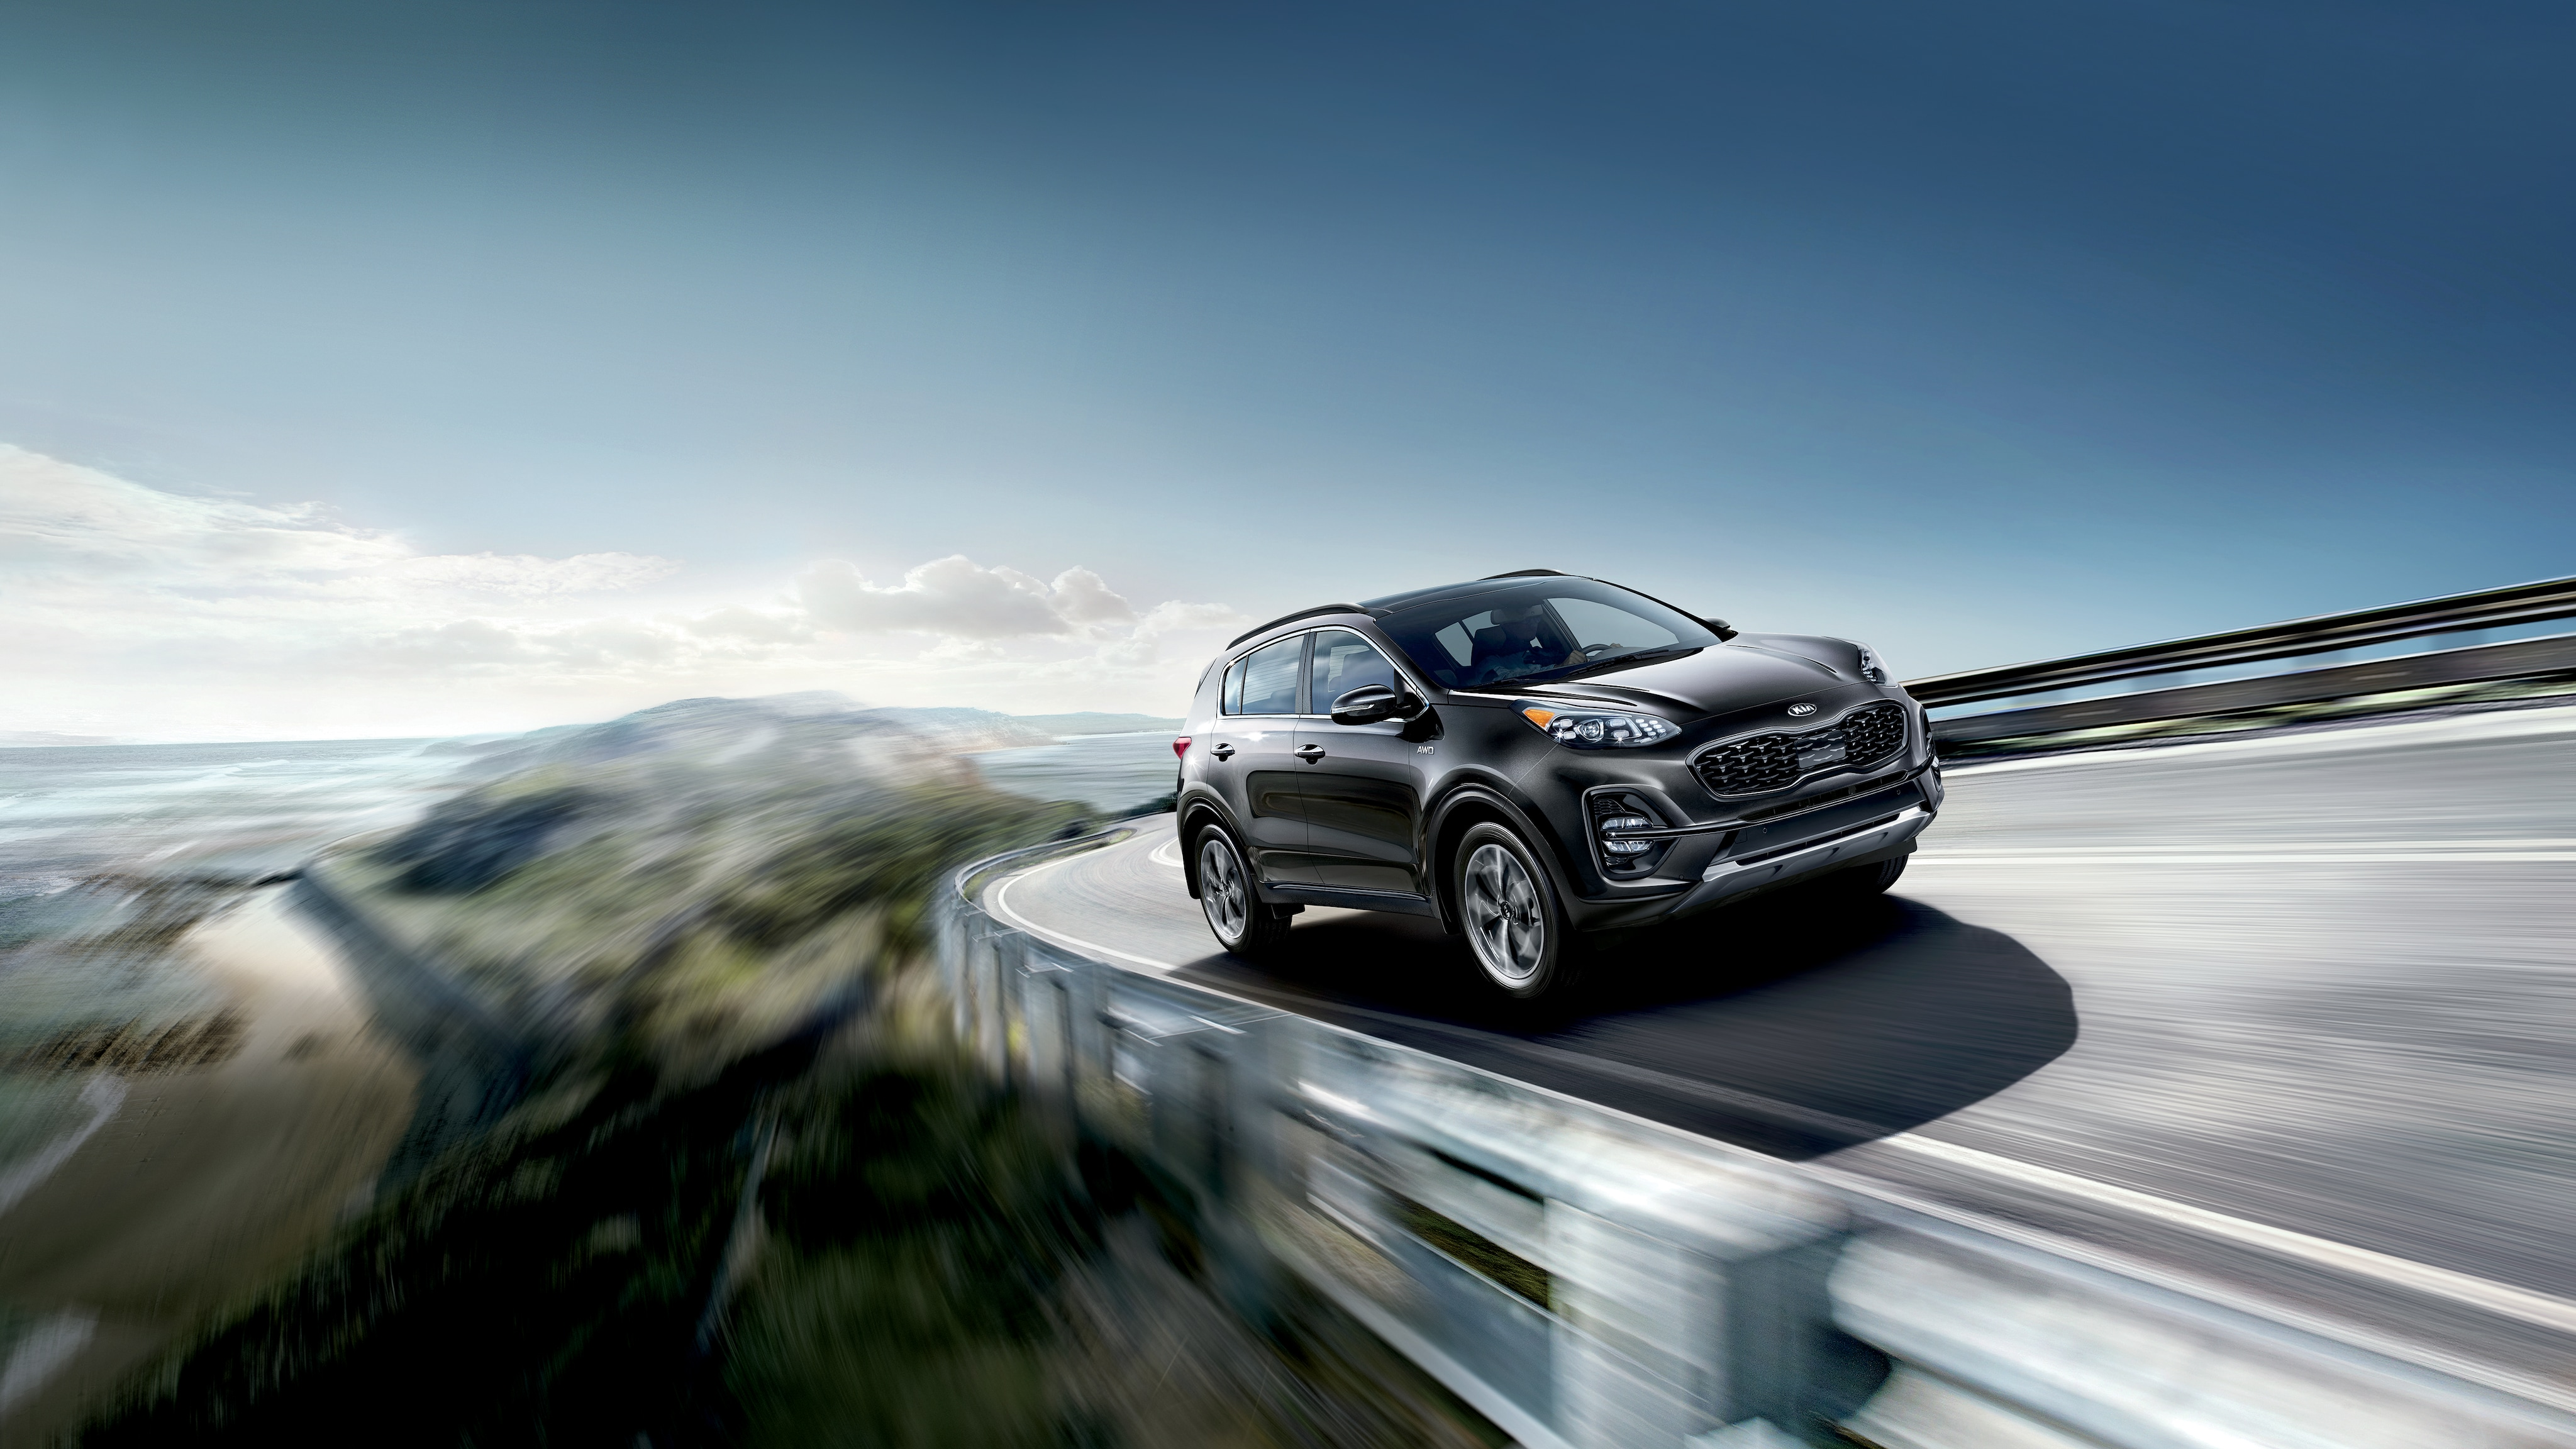 West Broad Kia is a Kia Dealership in Richmond near Laurel, VA | 2020 Sorento driving on highway